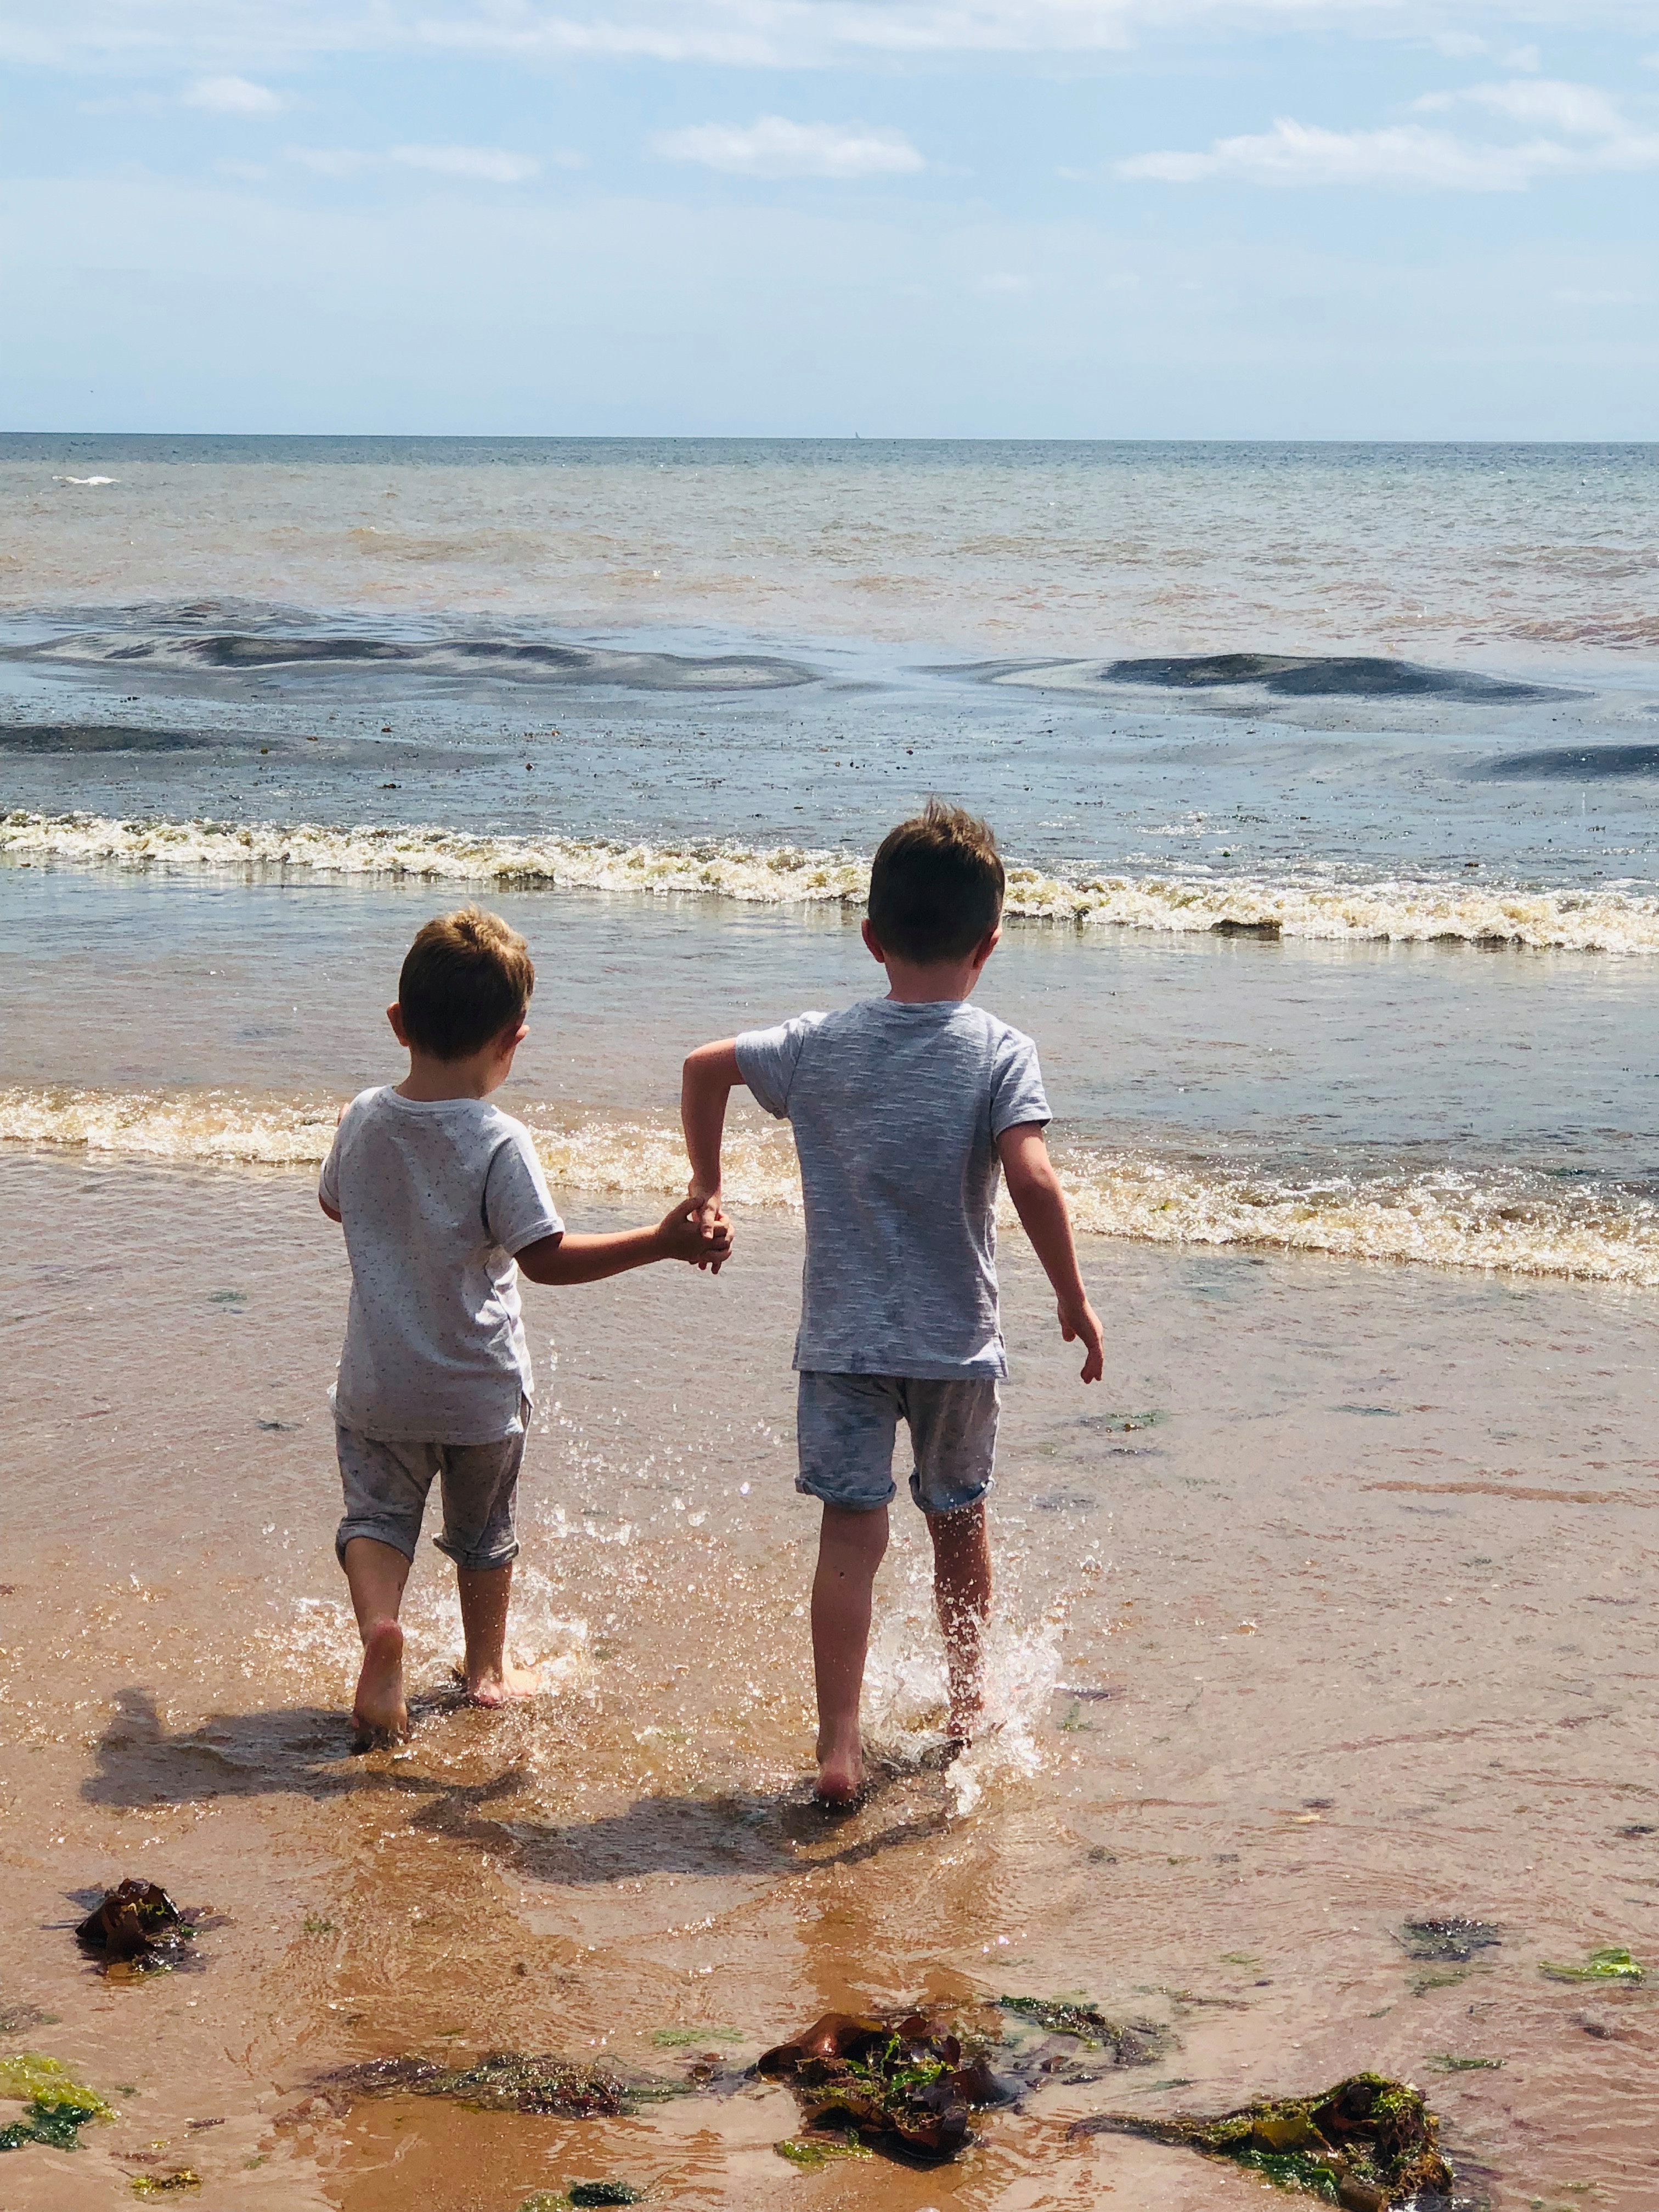 Book your Hols from £9.50 and pick from 245 holiday parks across the UK and Europe